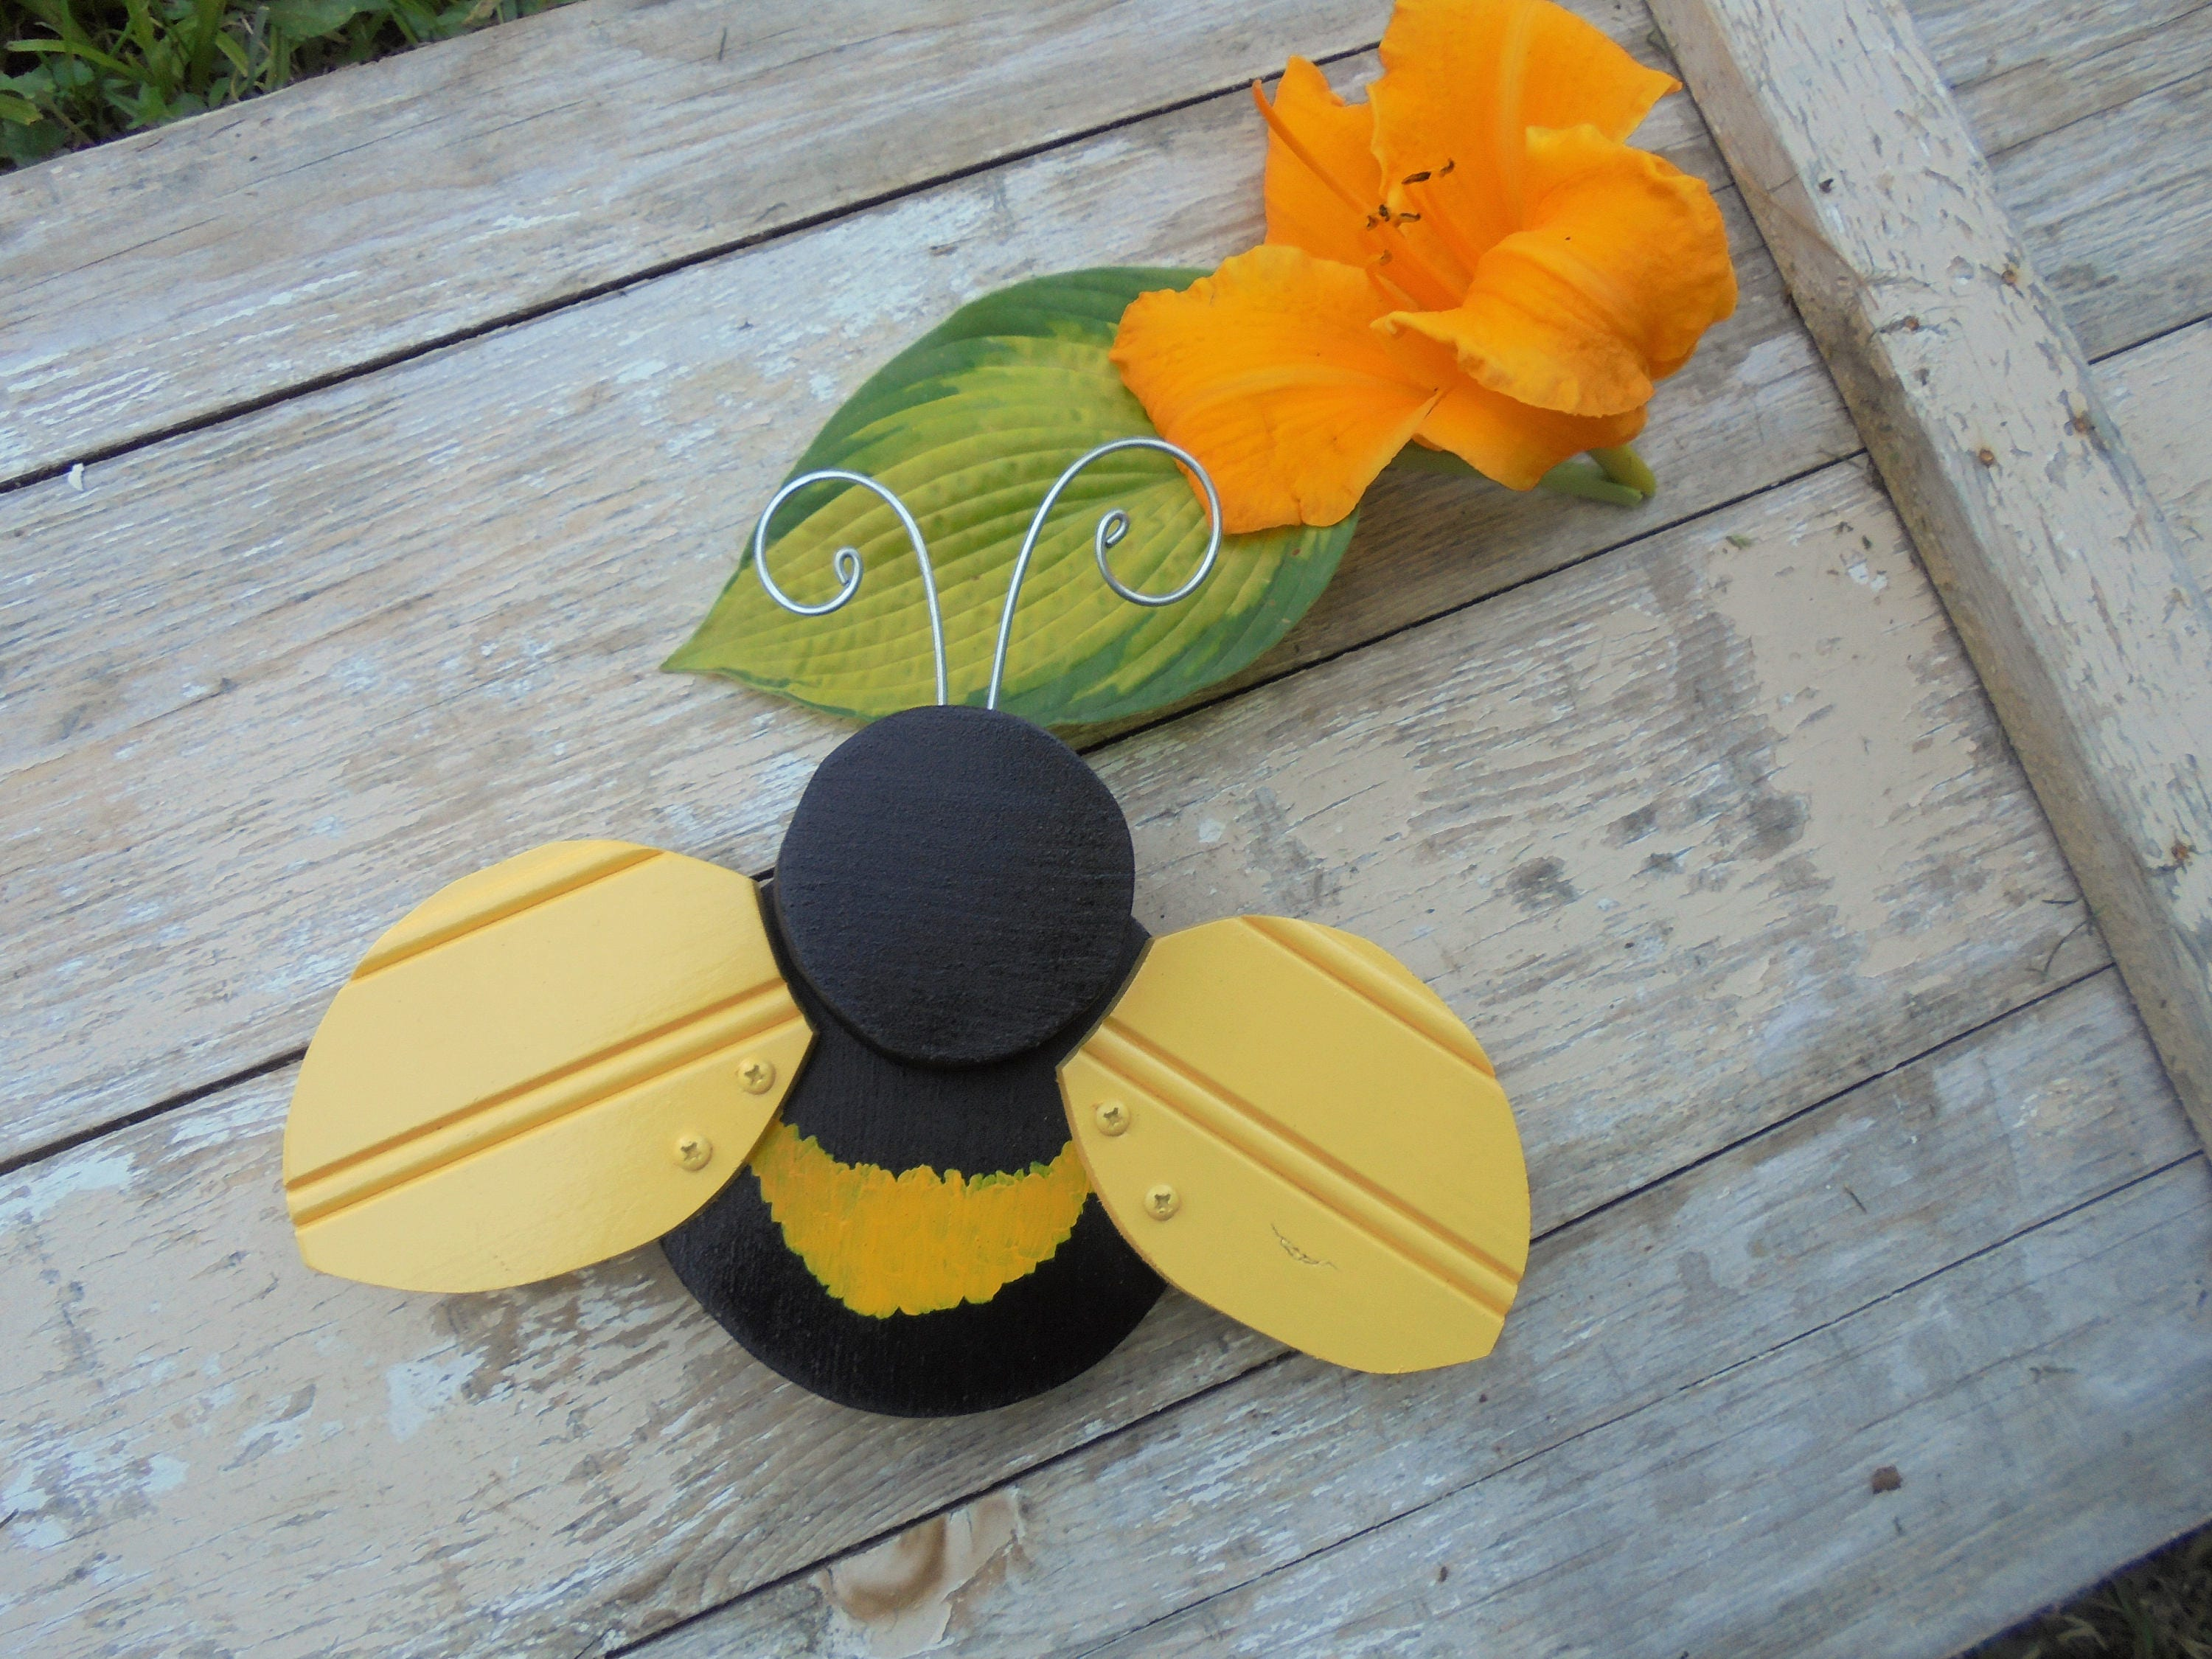 Folk art bumble bee yard art garden decor home decor for Honey bee decorations for your home